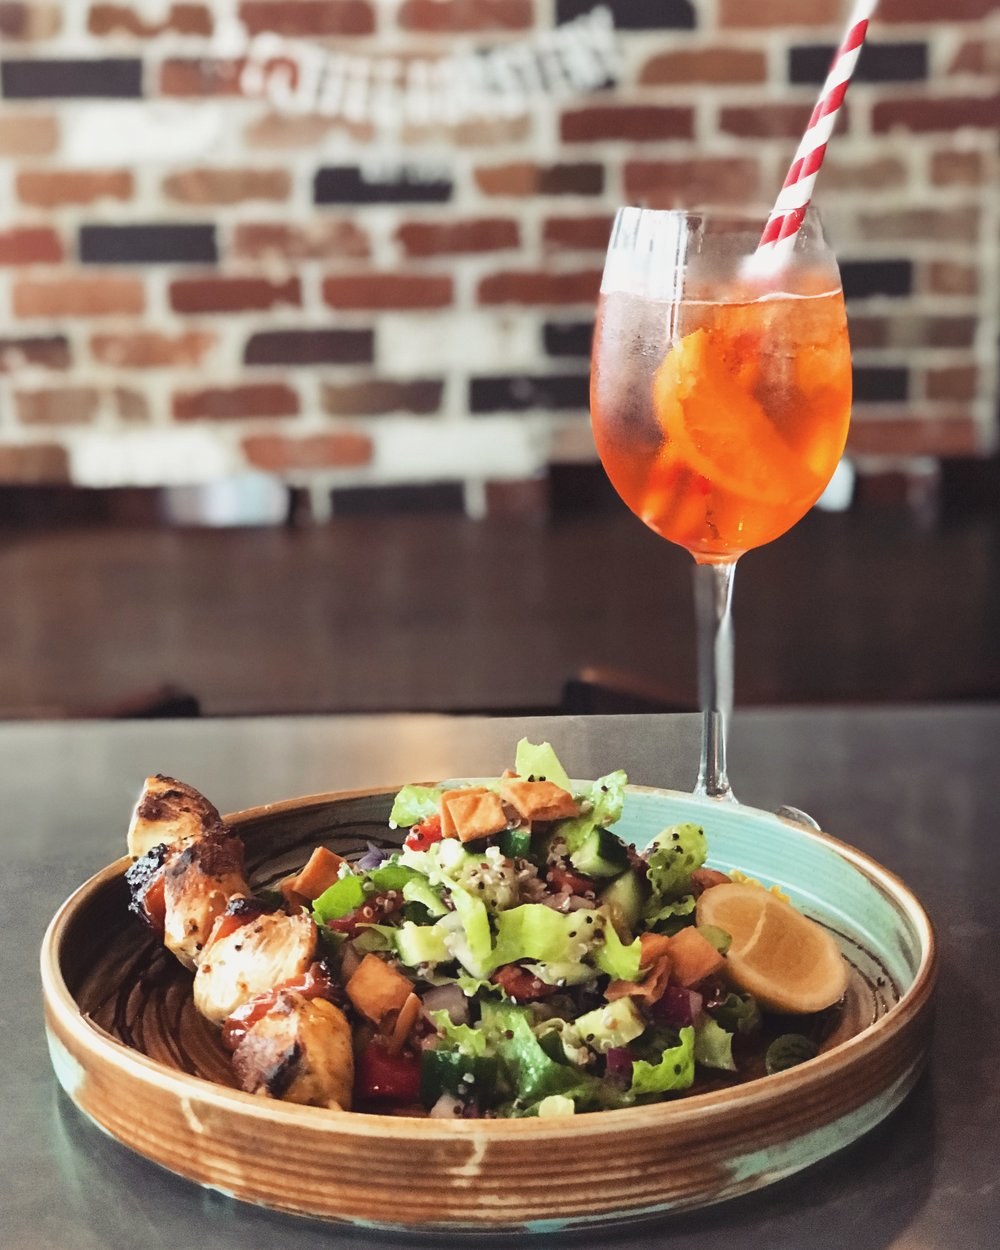 3-9 January - Chargrilled bell pepper and chicken spiedino on a bed of conditella salad with garden veggies, roasted quinoa, sourdough croutons and aged Modena balsamic vinegar.